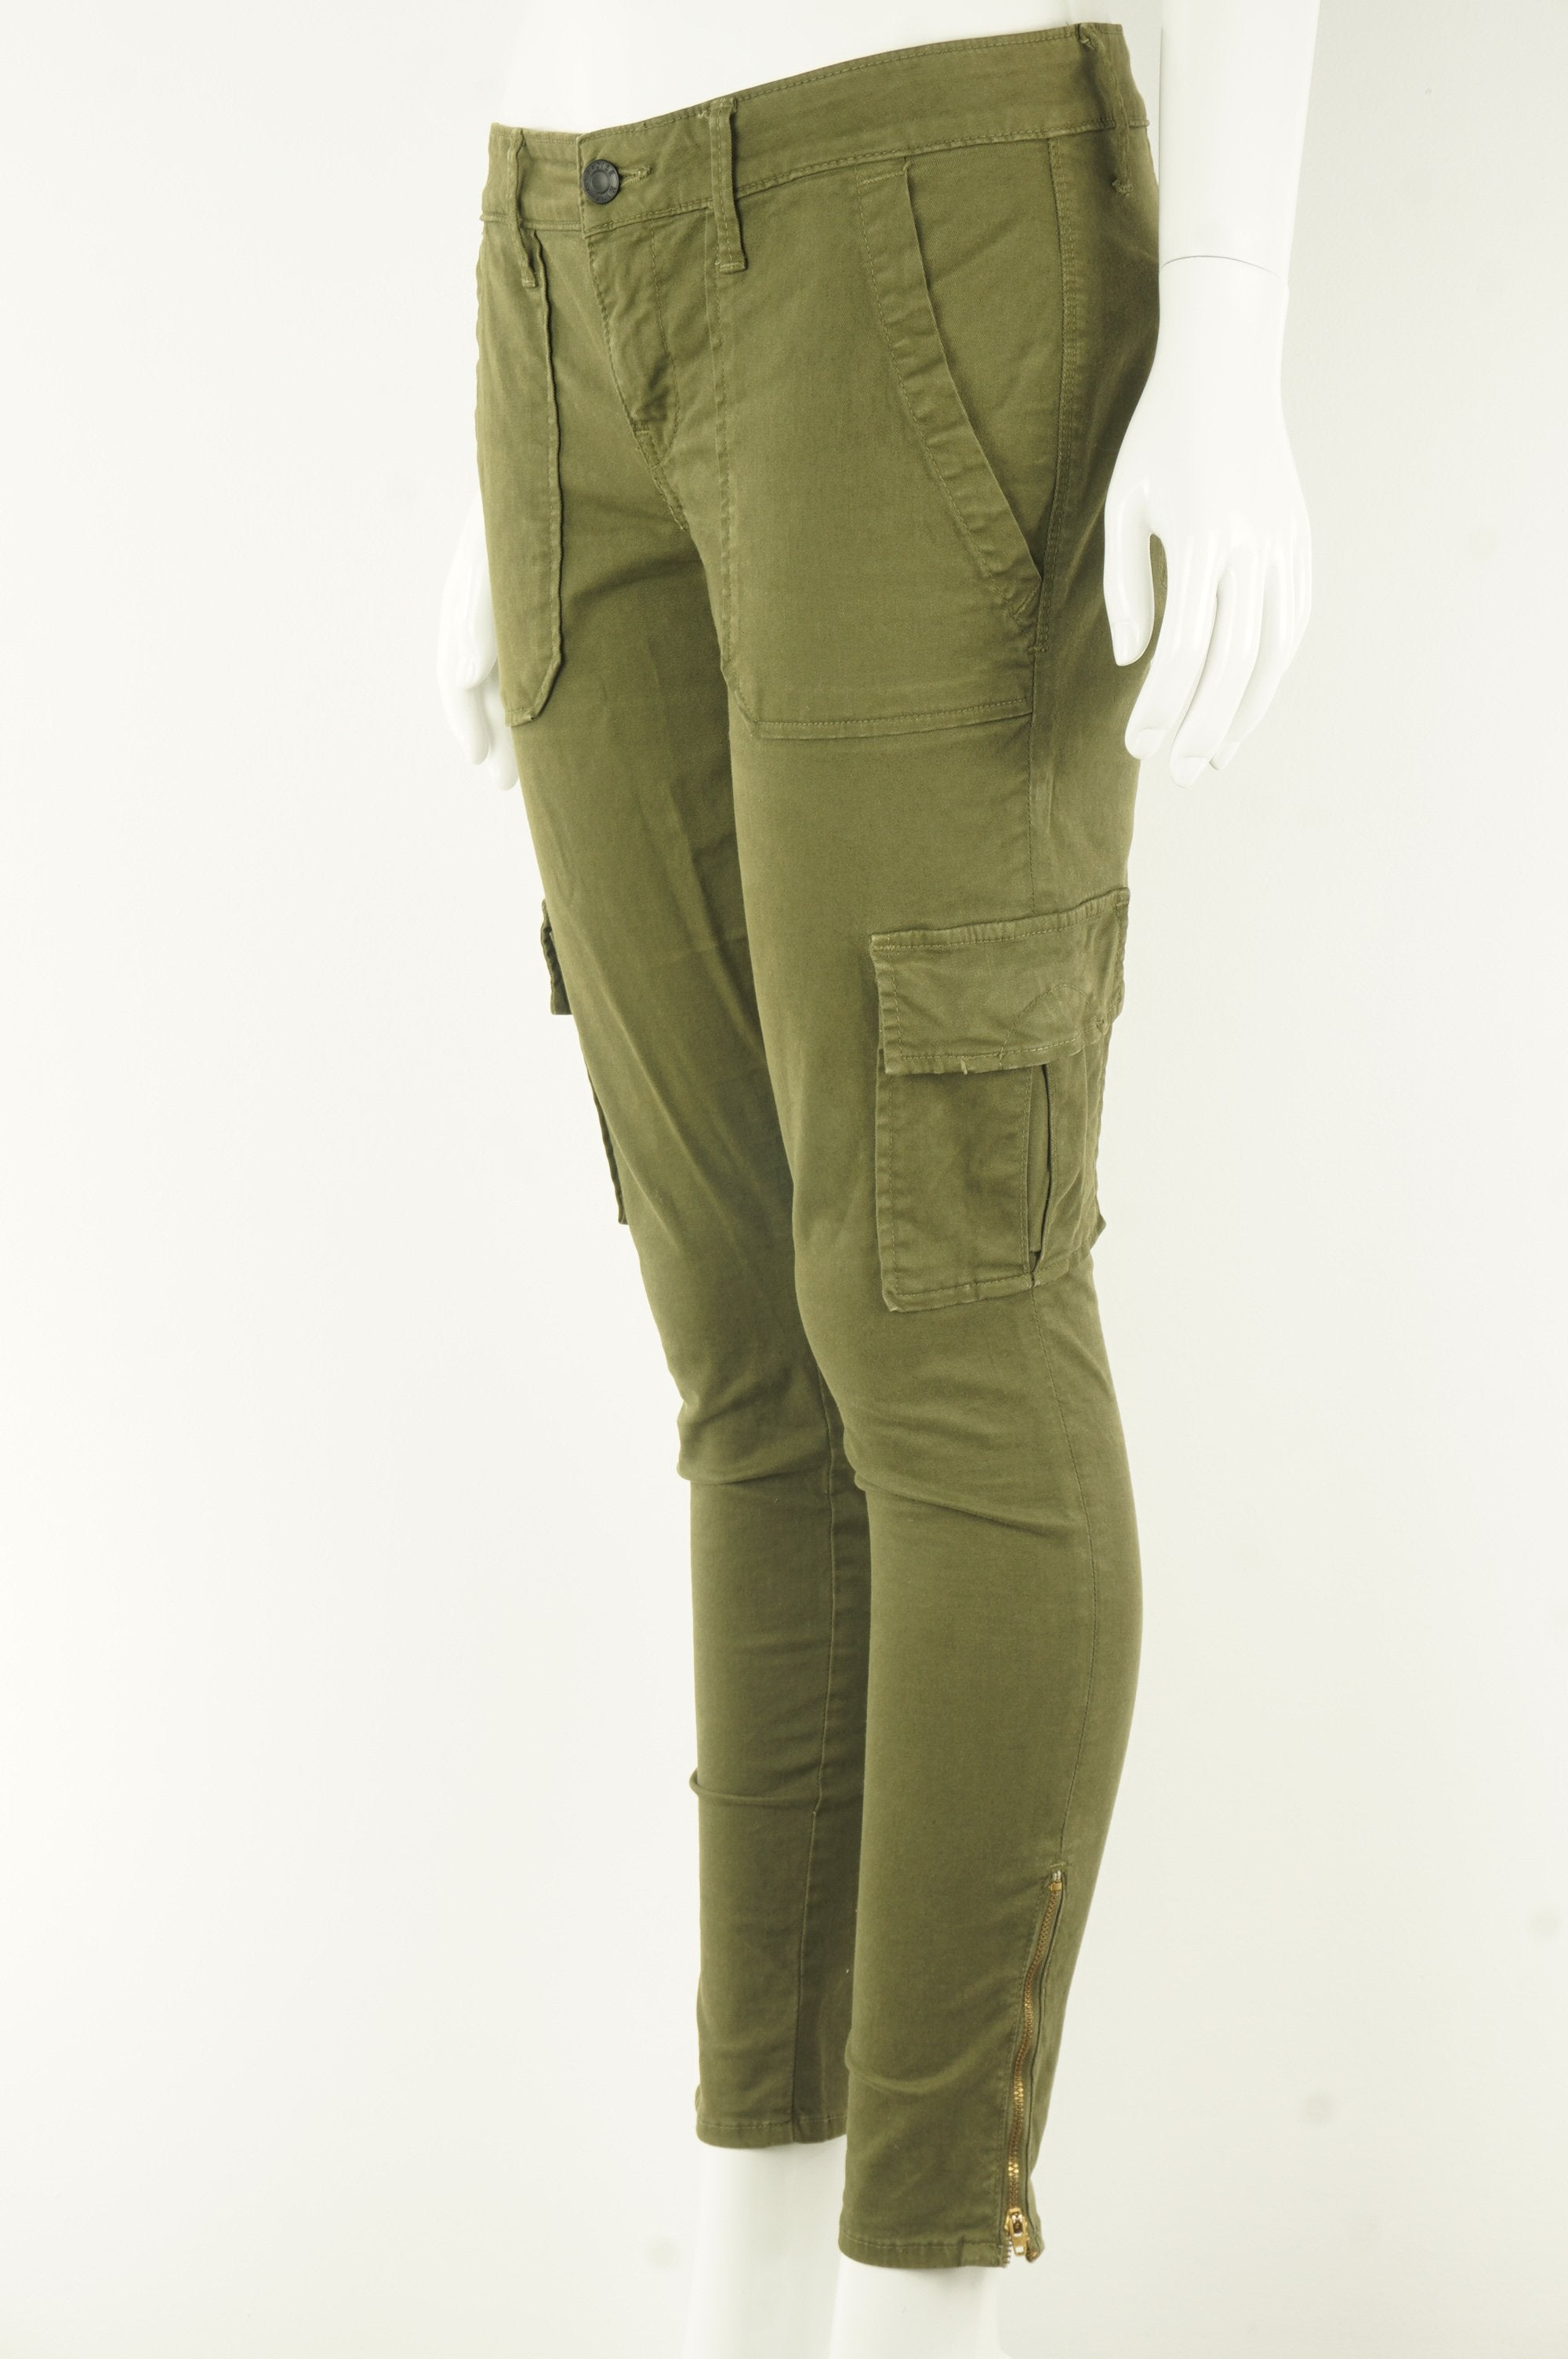 Paradise Mine Army Green Skinny Stretchy Jeans, The cool kinda pair of jeans with lots of pockets. , Green, 97% Cotton, 3% Spandex, women's Pants, women's Green Pants, Paradise Mine women's Pants, women's skinny denim pants with big front pockets, aritzia women's green straight jeans/denim